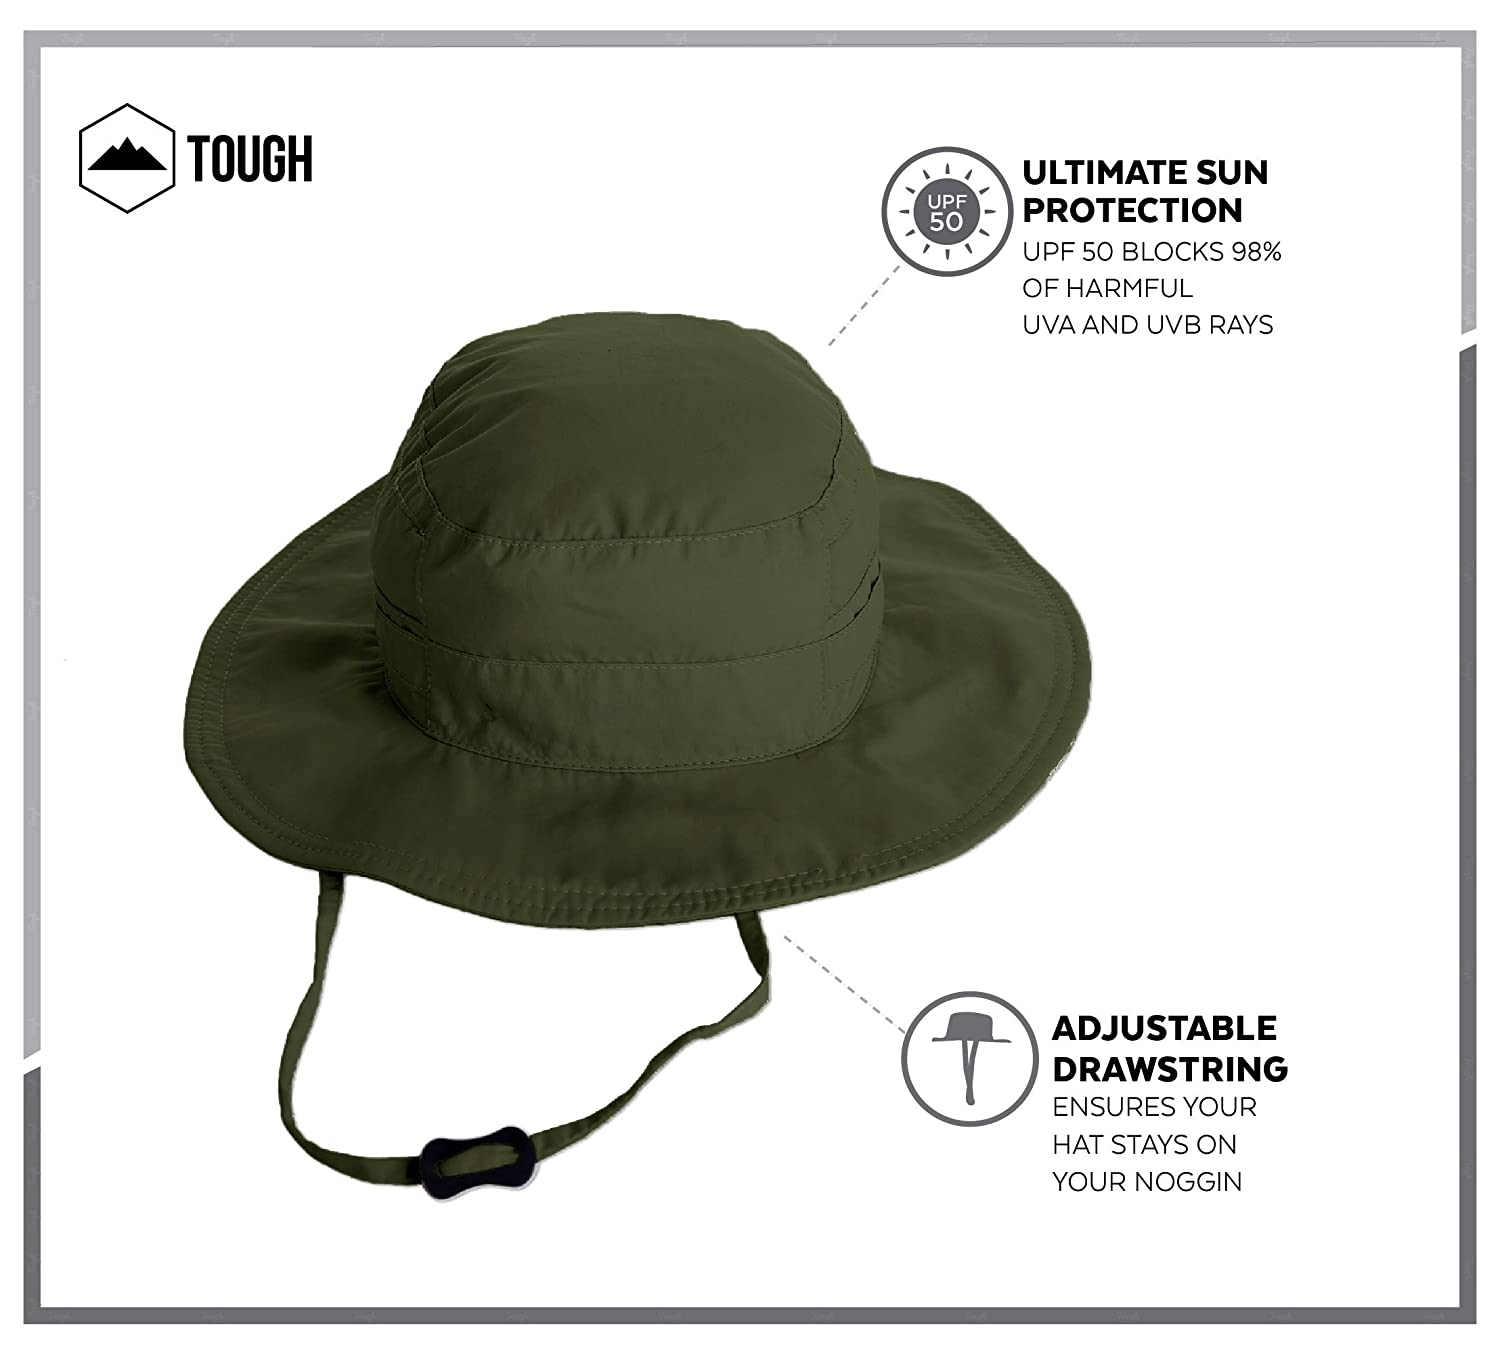 981985eae40 Amazon.com   Boonie Safari Sun Hat for Men   Women - UPF 50 Sun Protection  - Wide Brim Summer Hat. Waterproof for Fishing